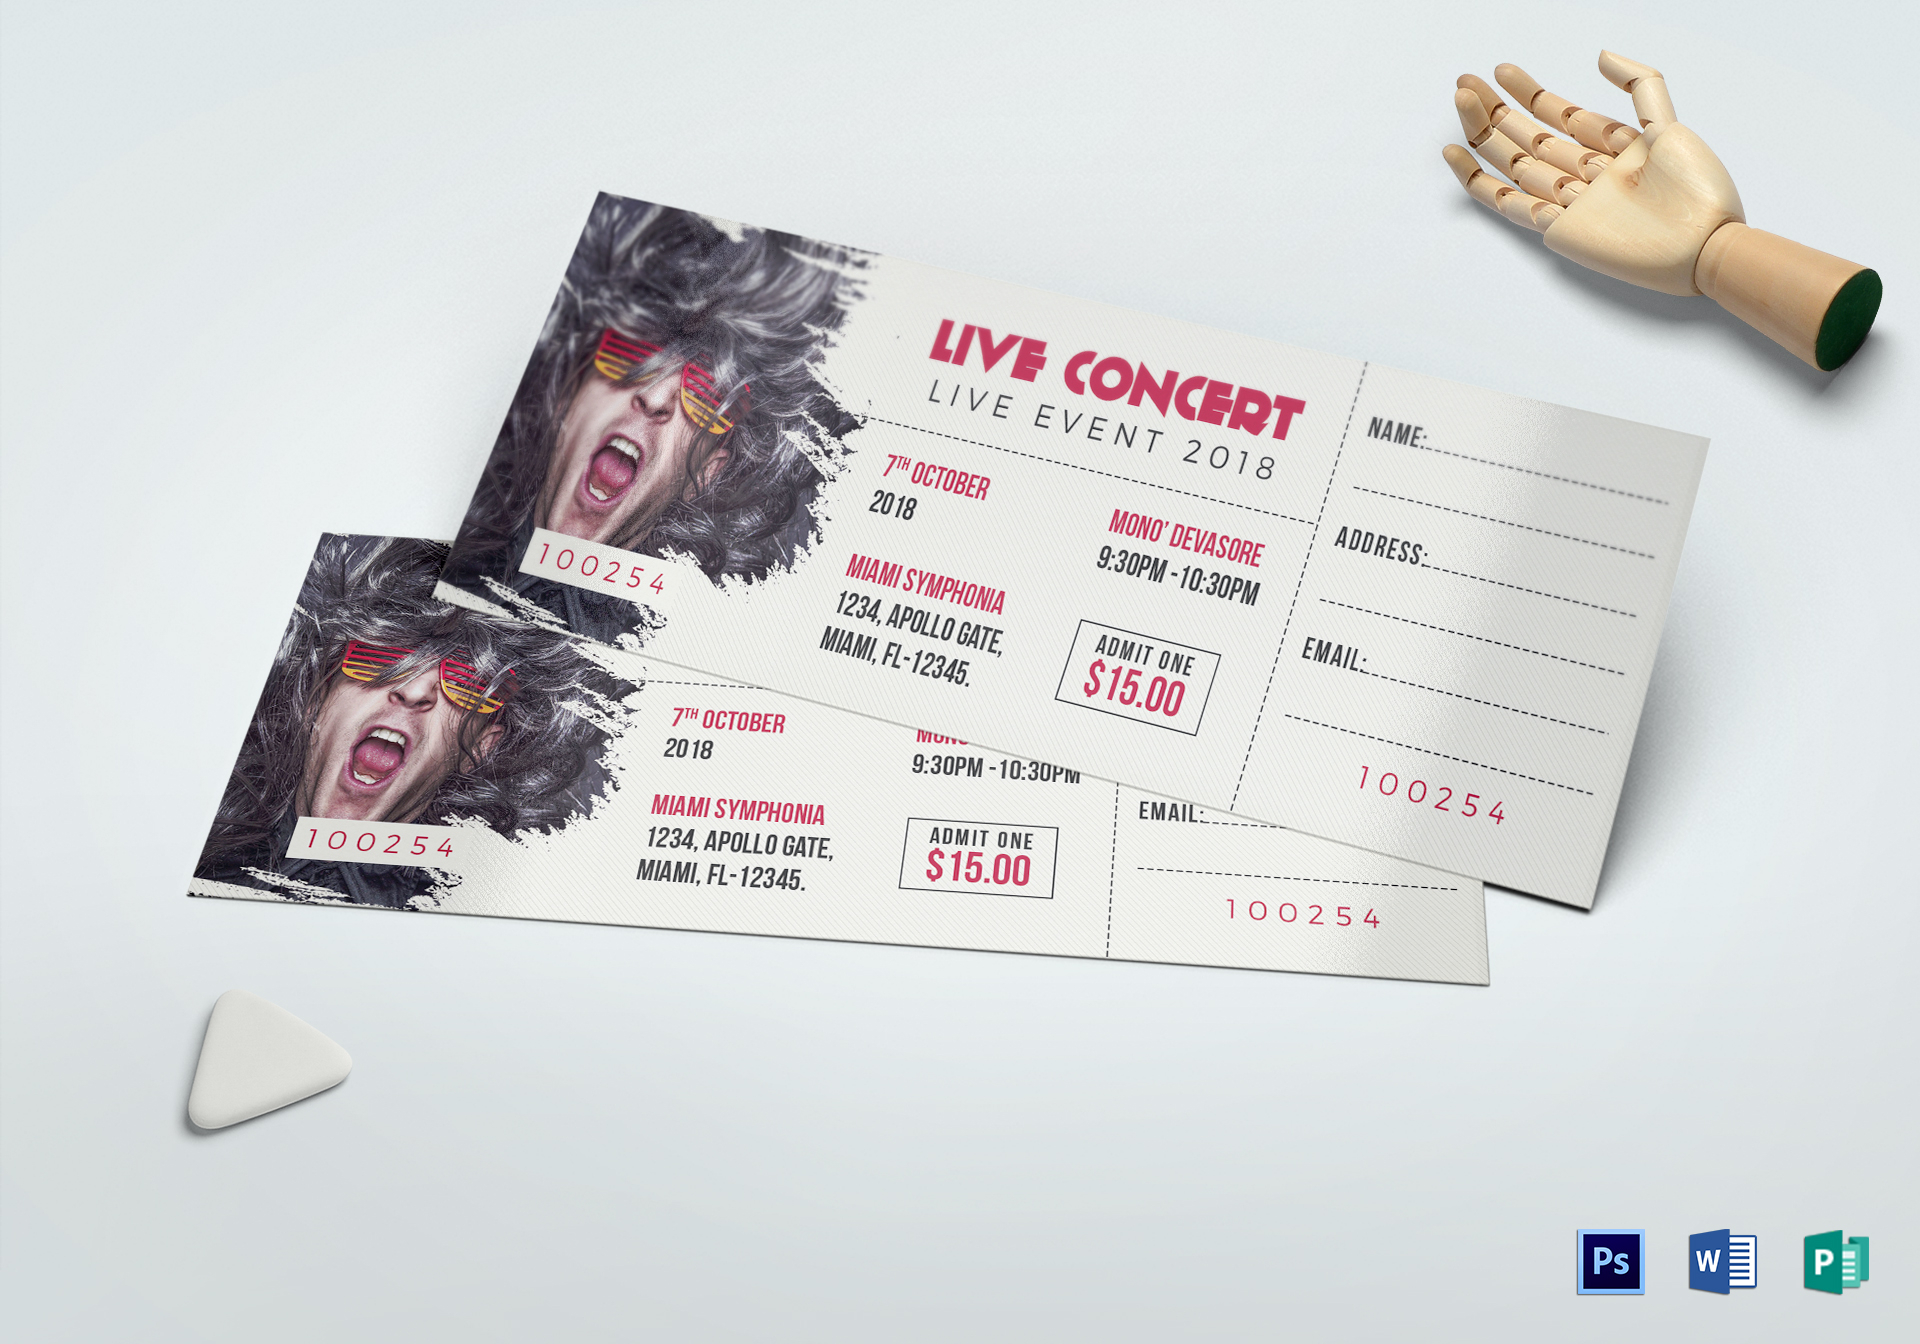 live concert ticket design template in word psd pages publisher. Black Bedroom Furniture Sets. Home Design Ideas